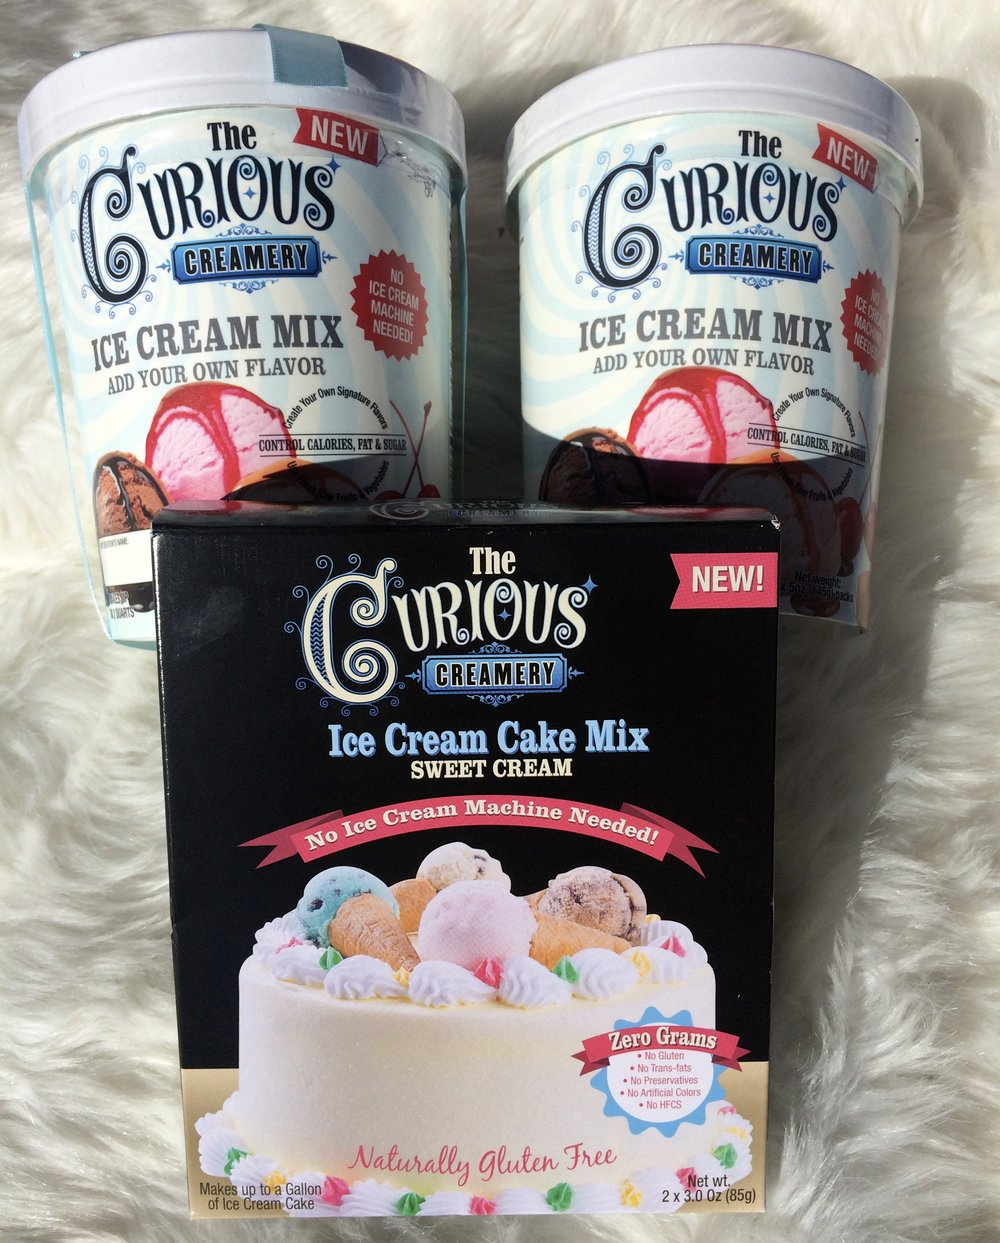 Curious Creamery Ice Cream - review - whatthegirlssay.com